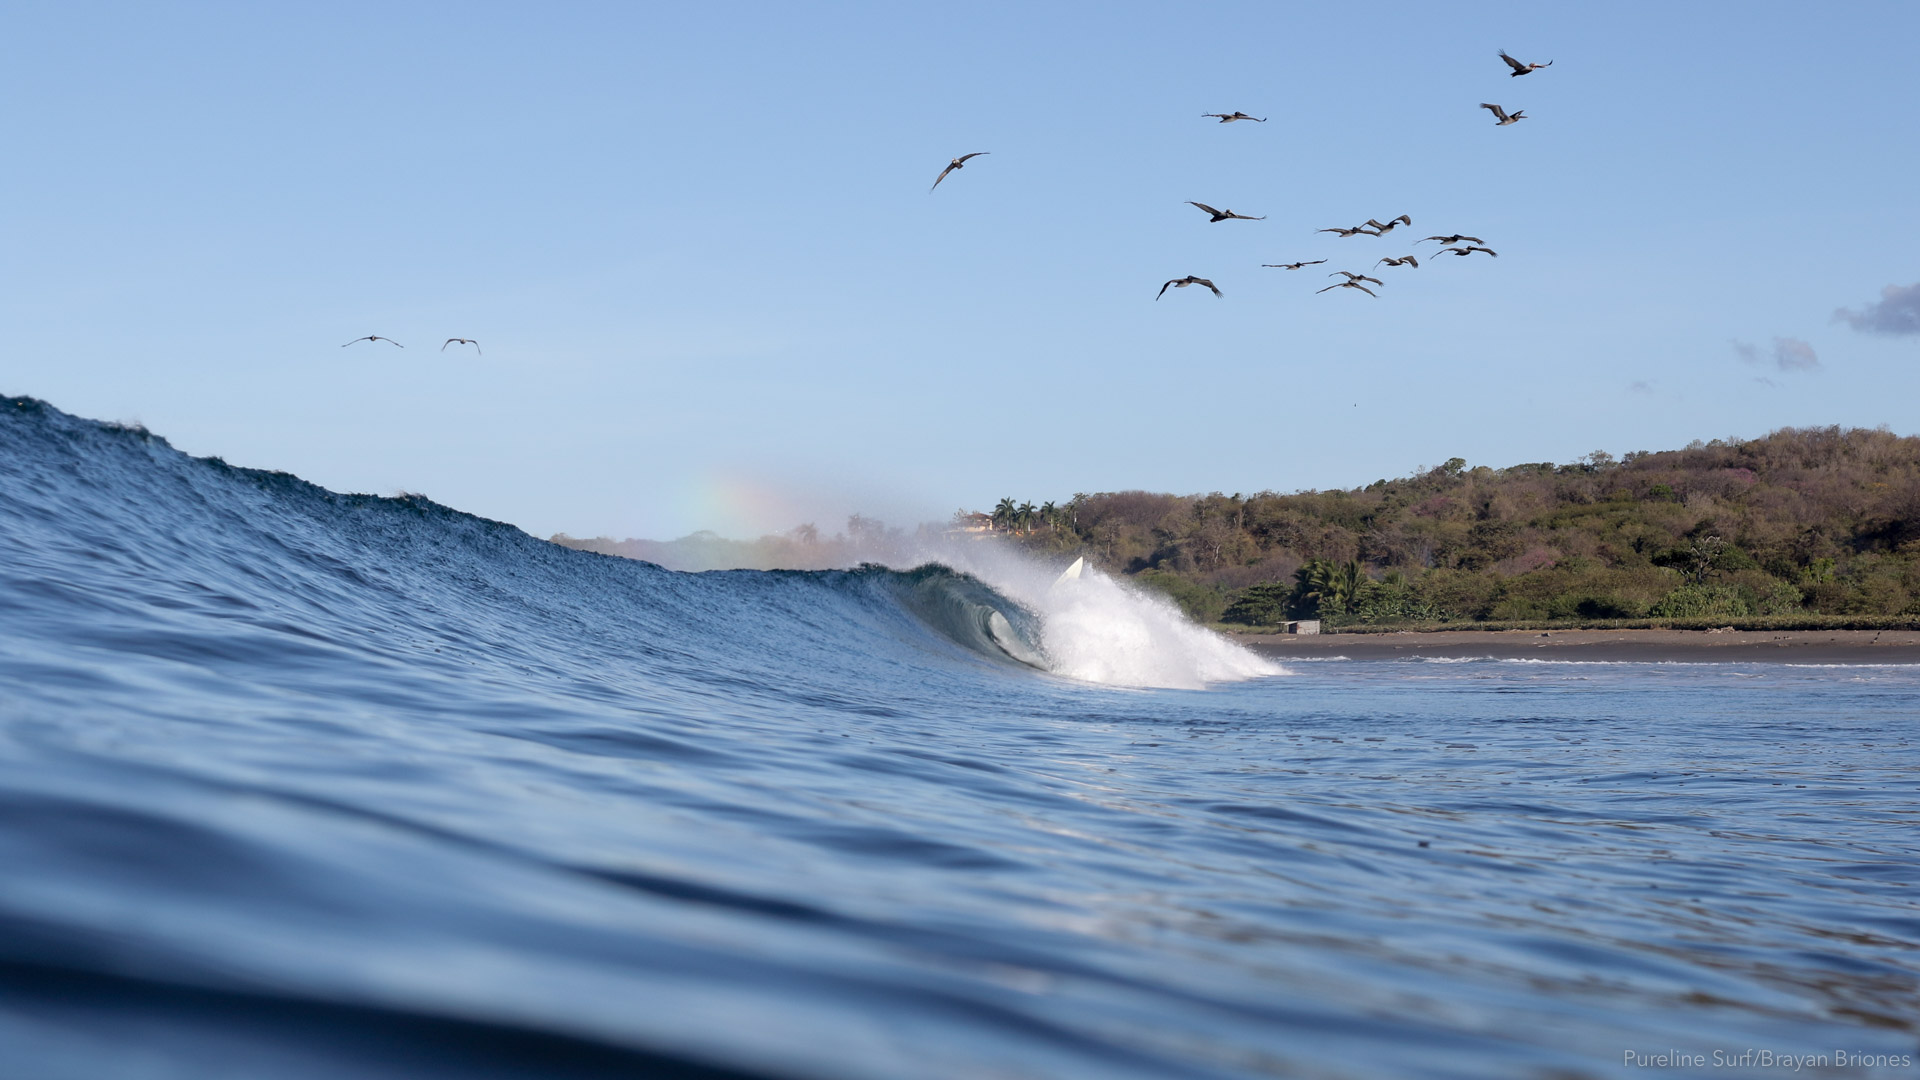 An inwater photograph of a peeling right-hand wave in Costa Rica; a great beach for progression your surfing with Pureline Surf.